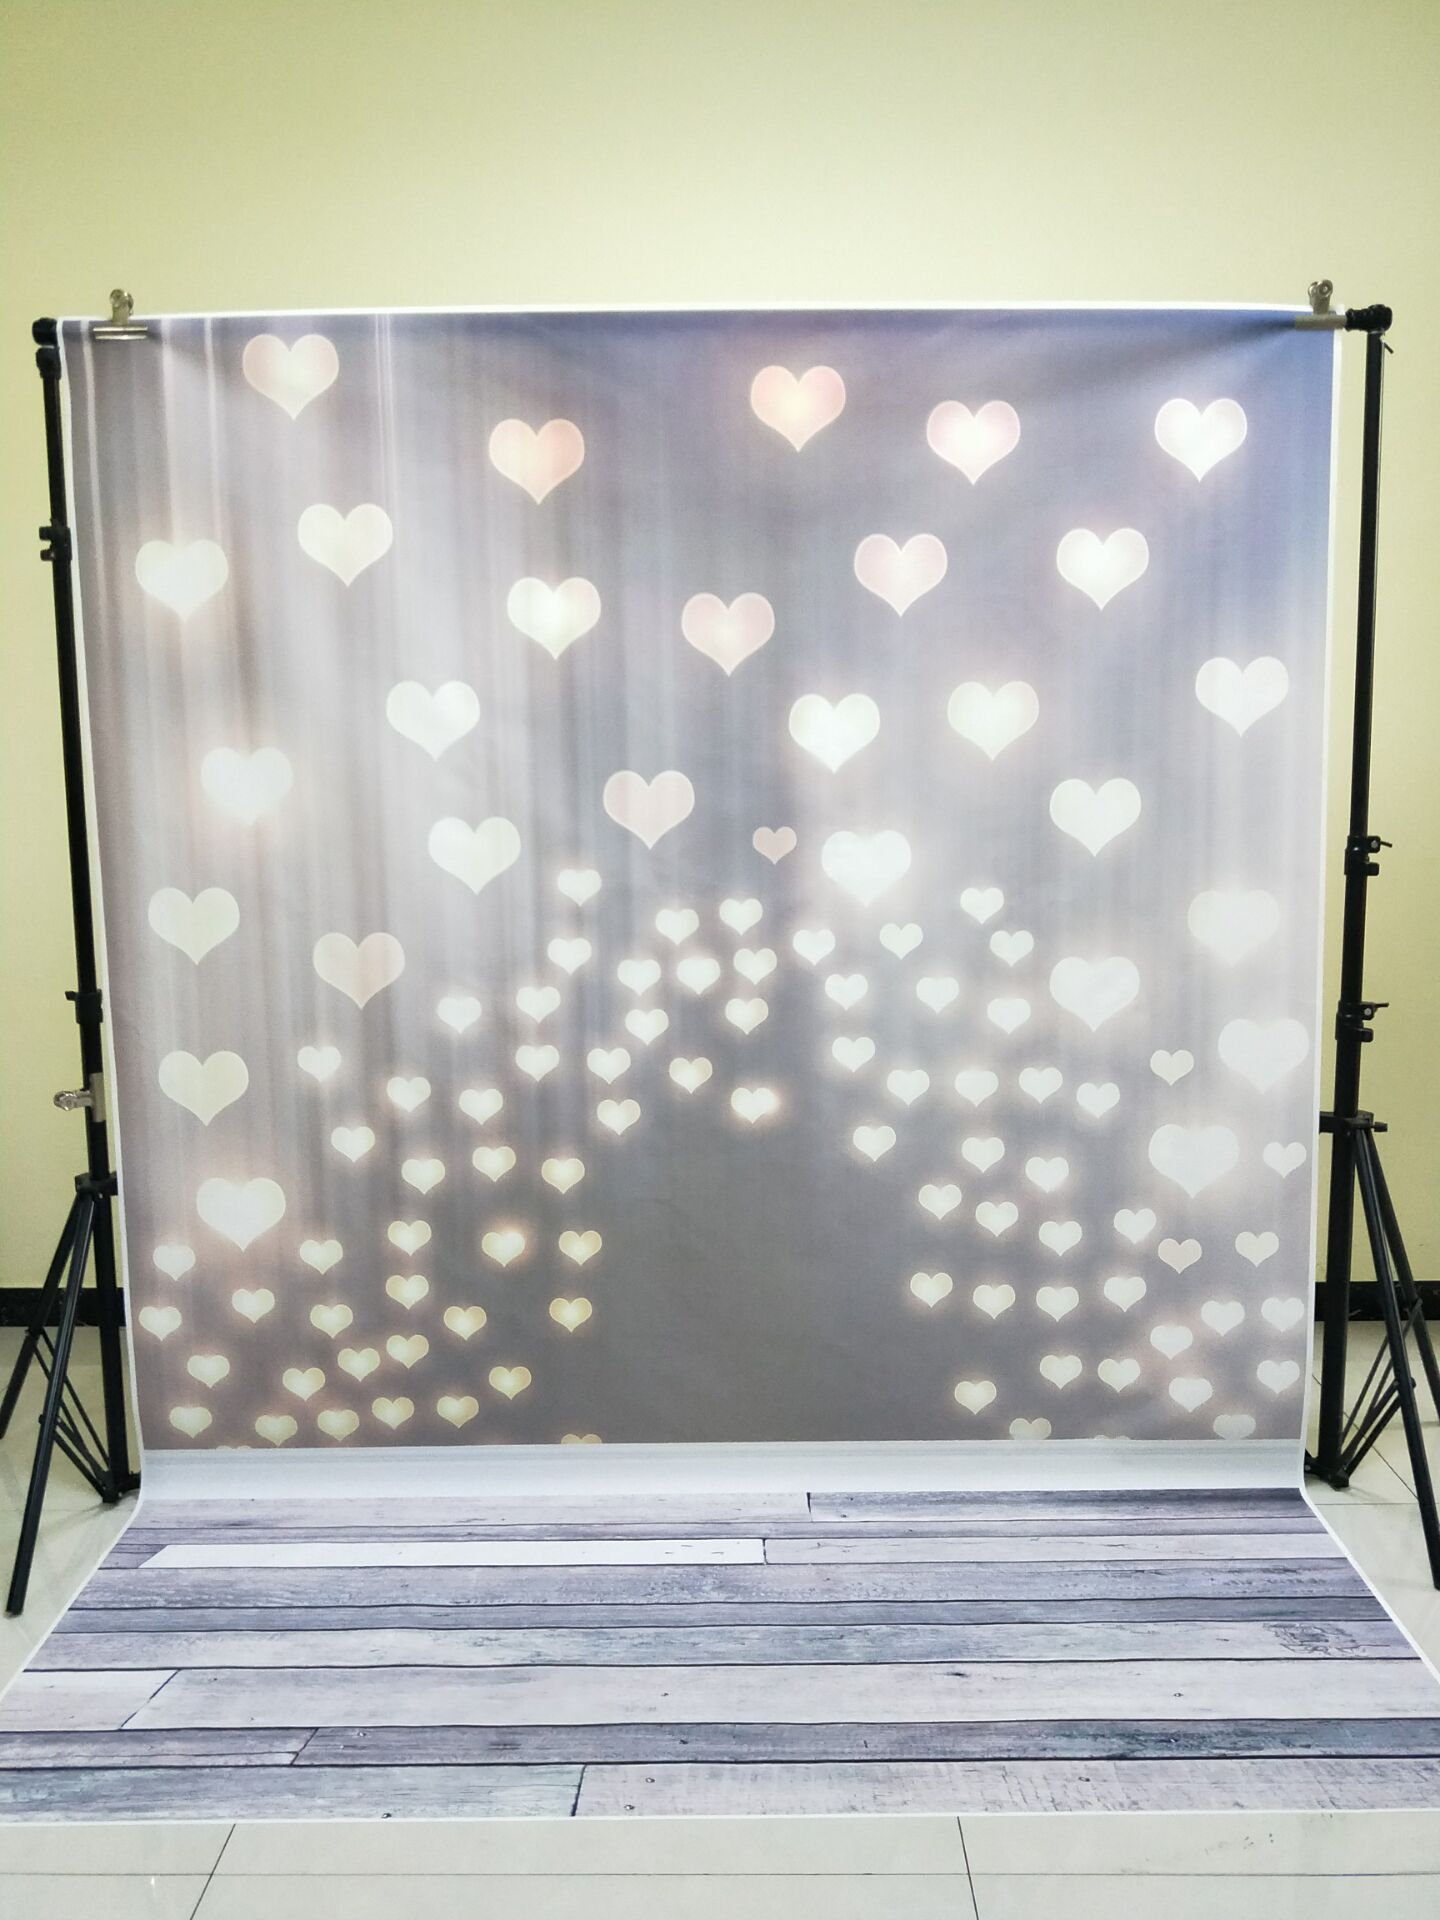 HUAYI 1.8x2.5m seamless Valentine backdrop for photography wood floor vinyl backdrops bokeh heart background paper XT-6074 huayi 4pc 2x2ft wood floor brick wall backdrop vinyl photography backdrops photo props background small object shooting gy 019